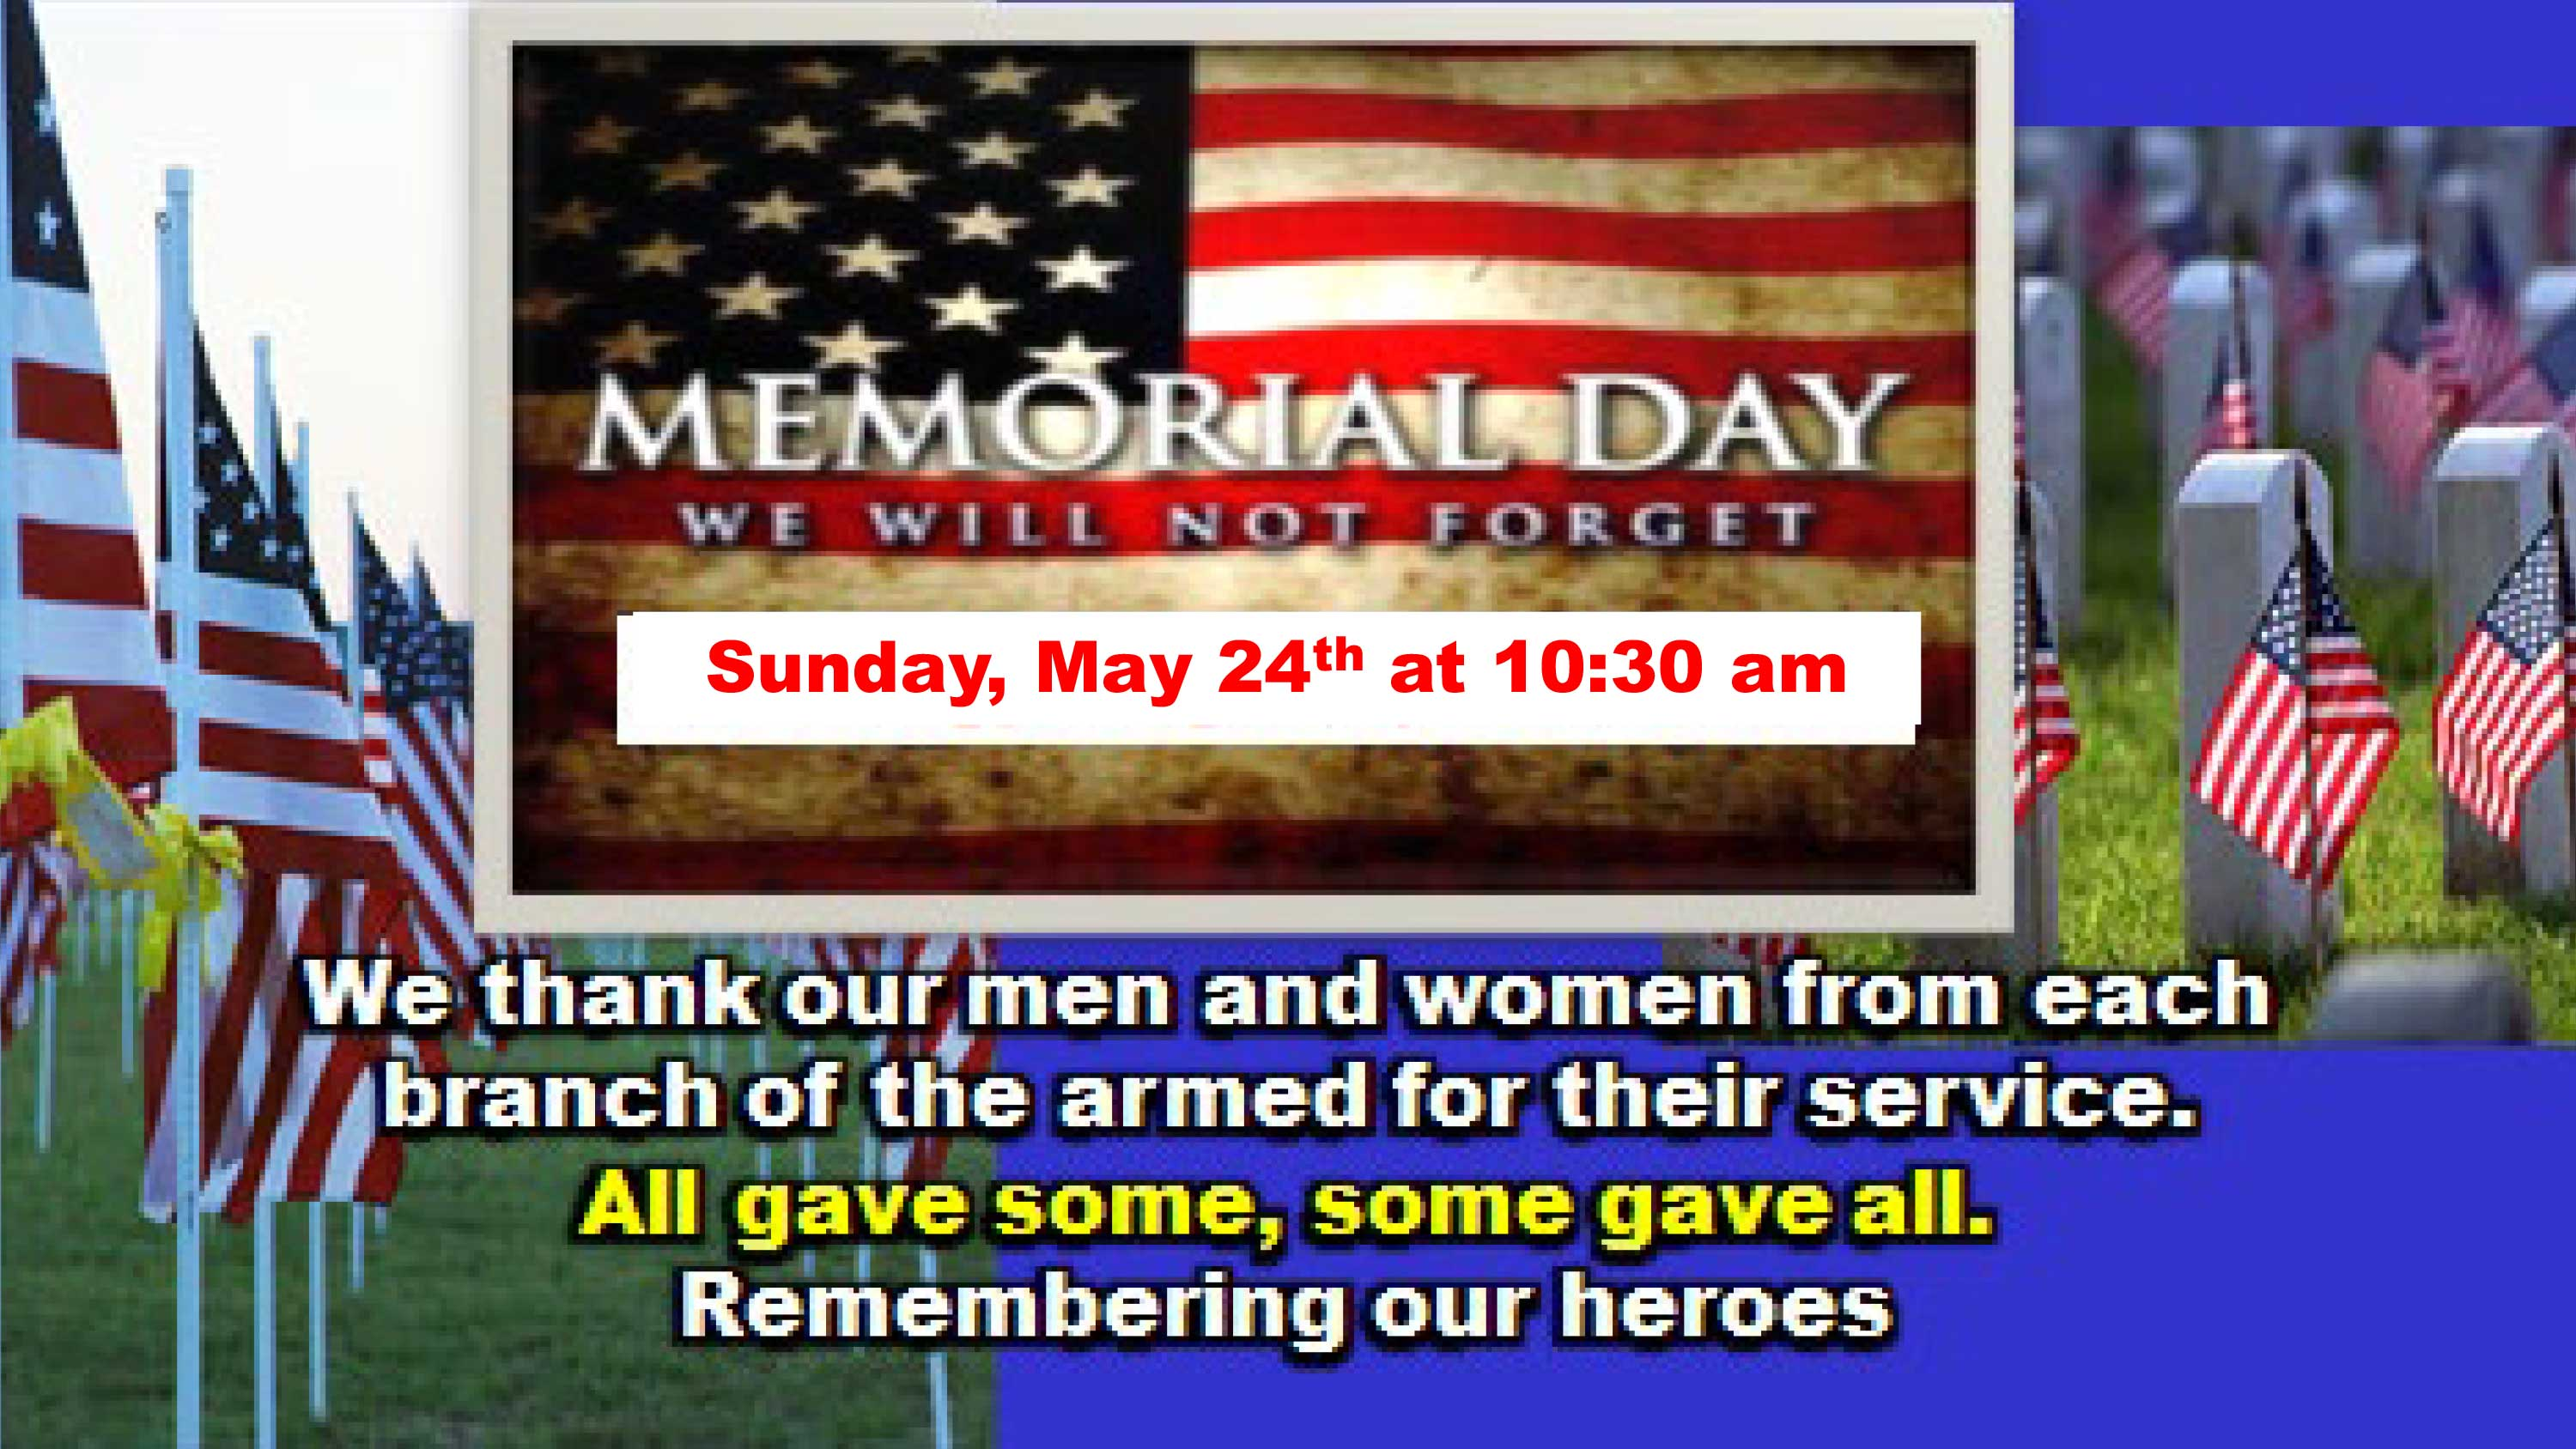 Memorial Day - We Will Not Forget